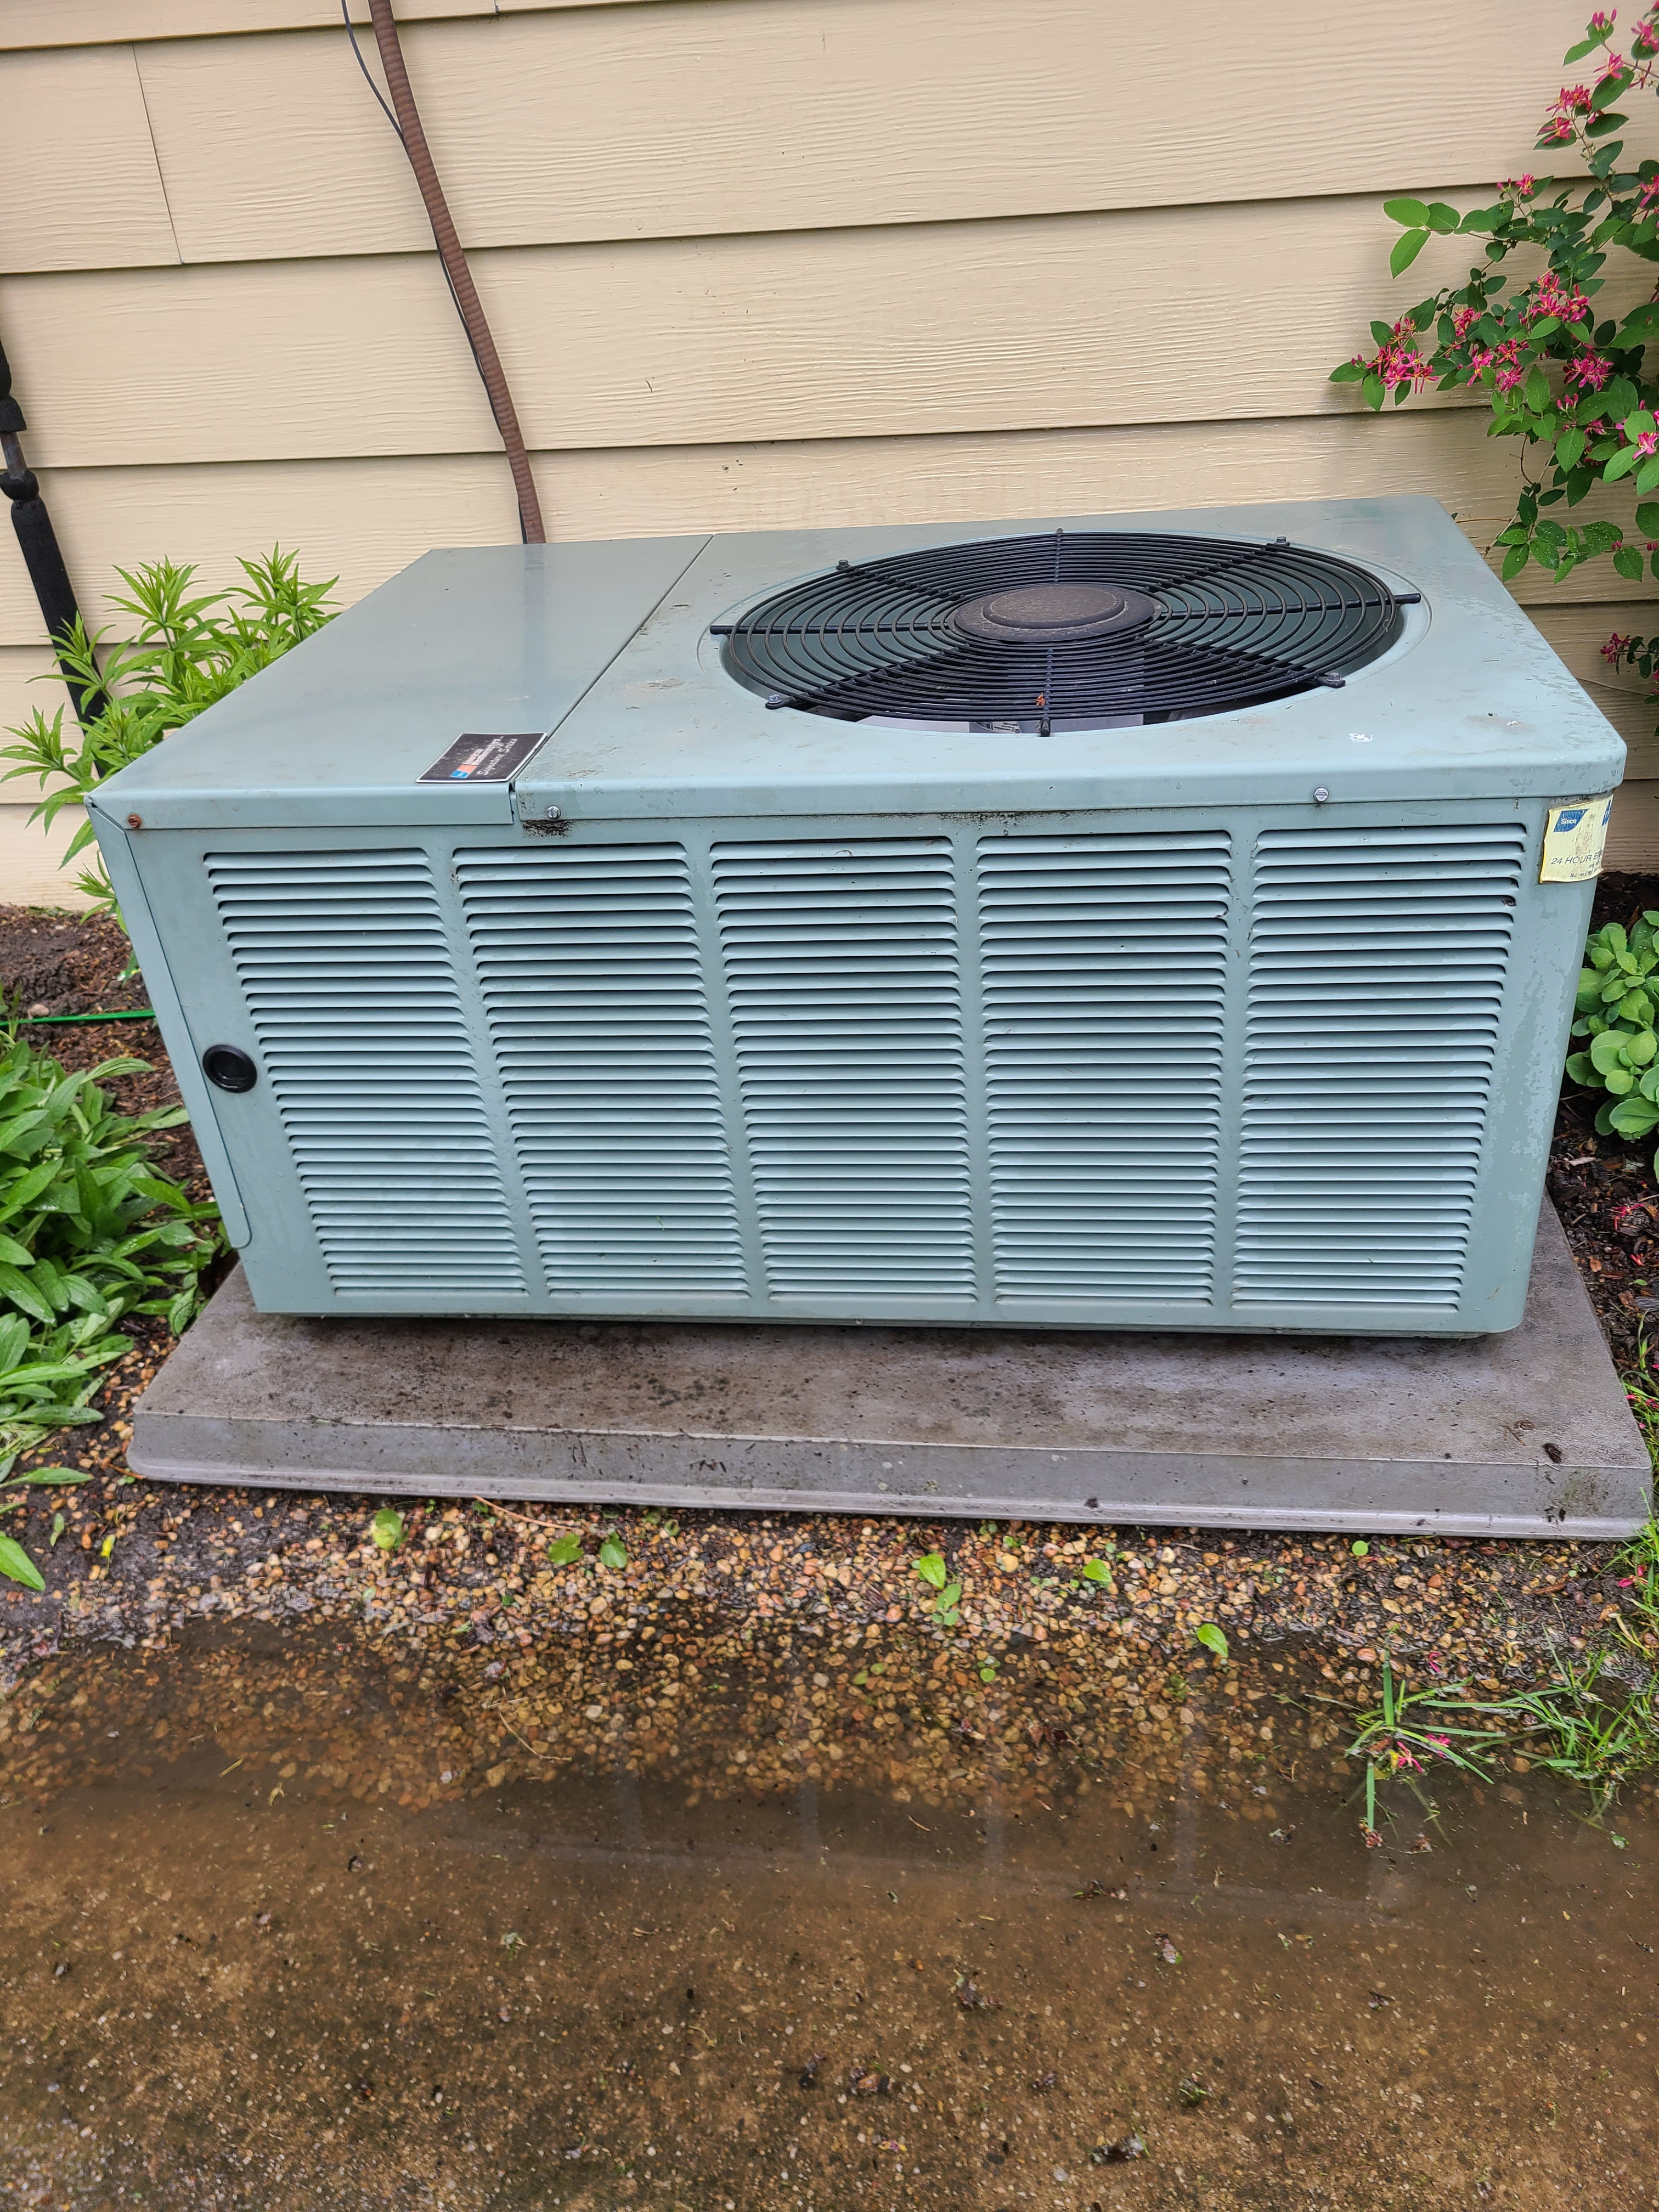 Clean up and maintained...RHEEM 410a system ready for spring/ summer operation